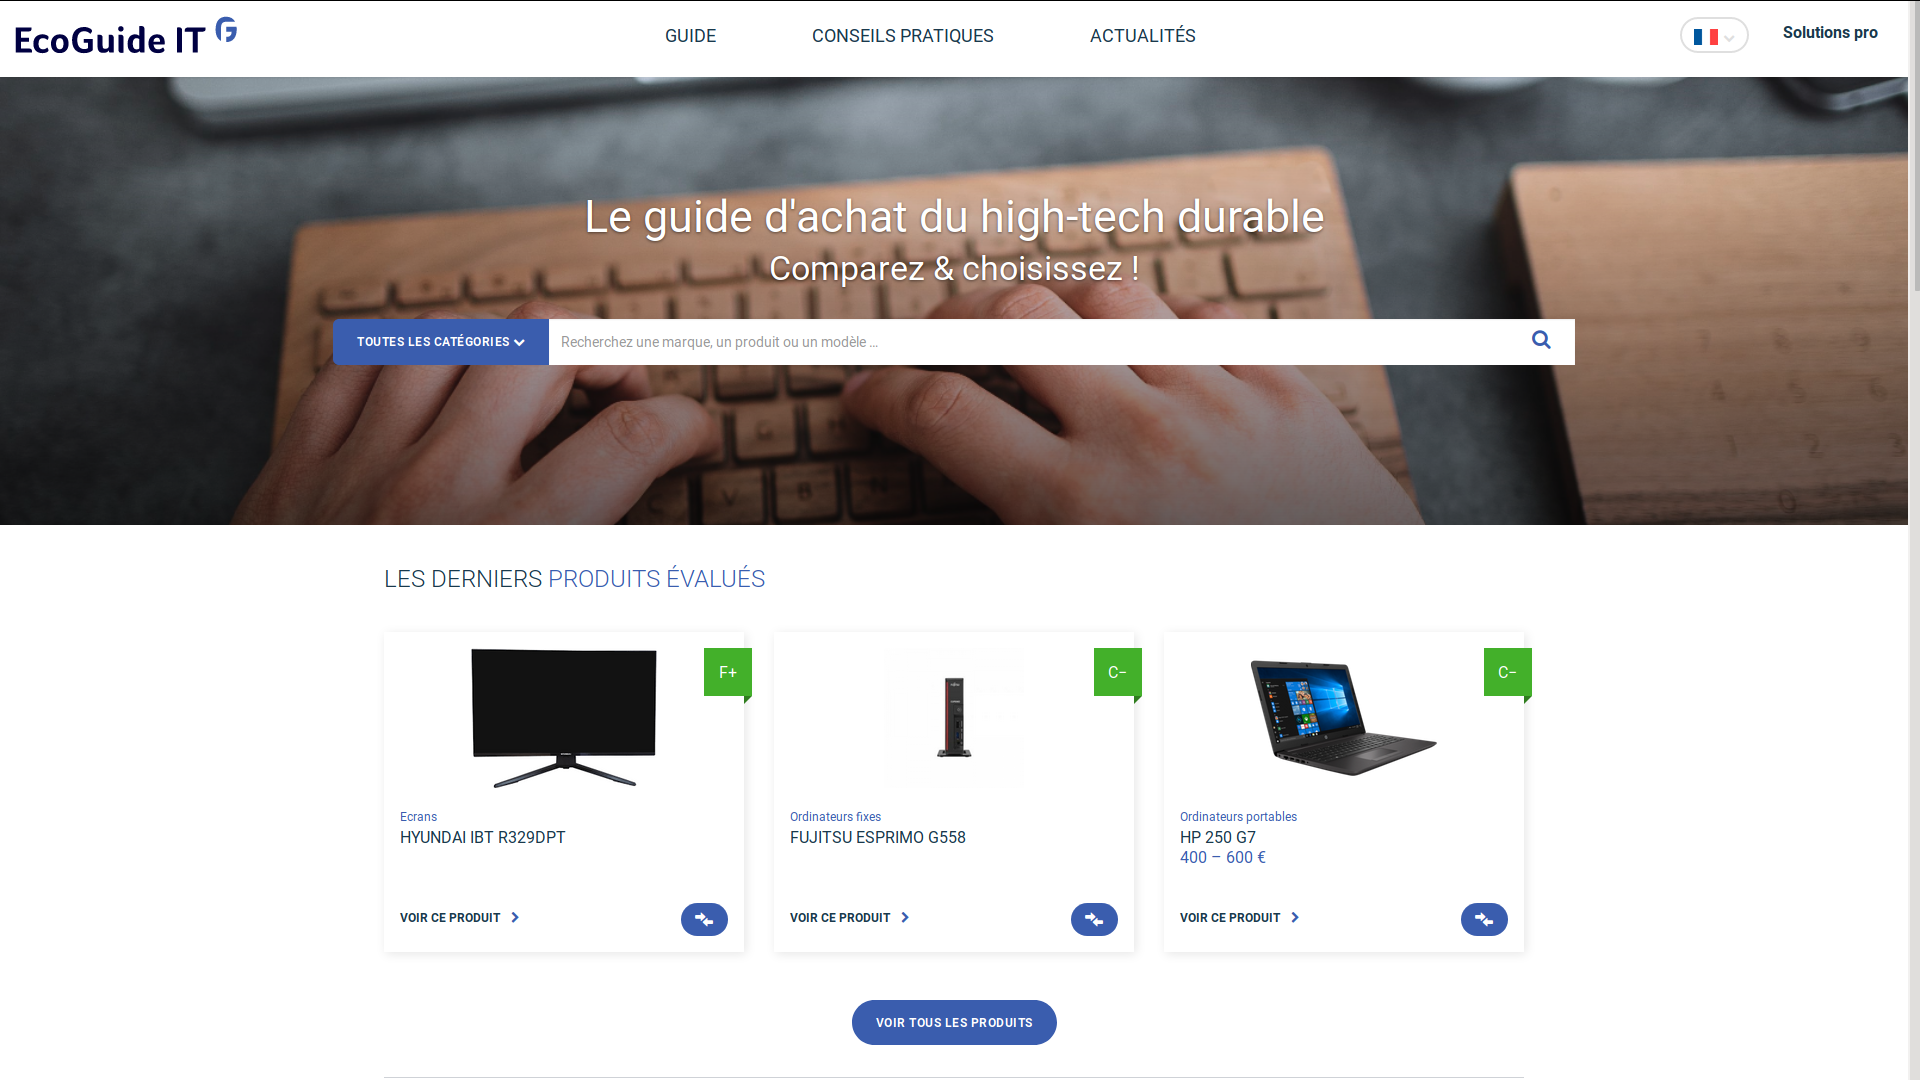 EcoGuideIT, le guide d'achat du high-tech durable